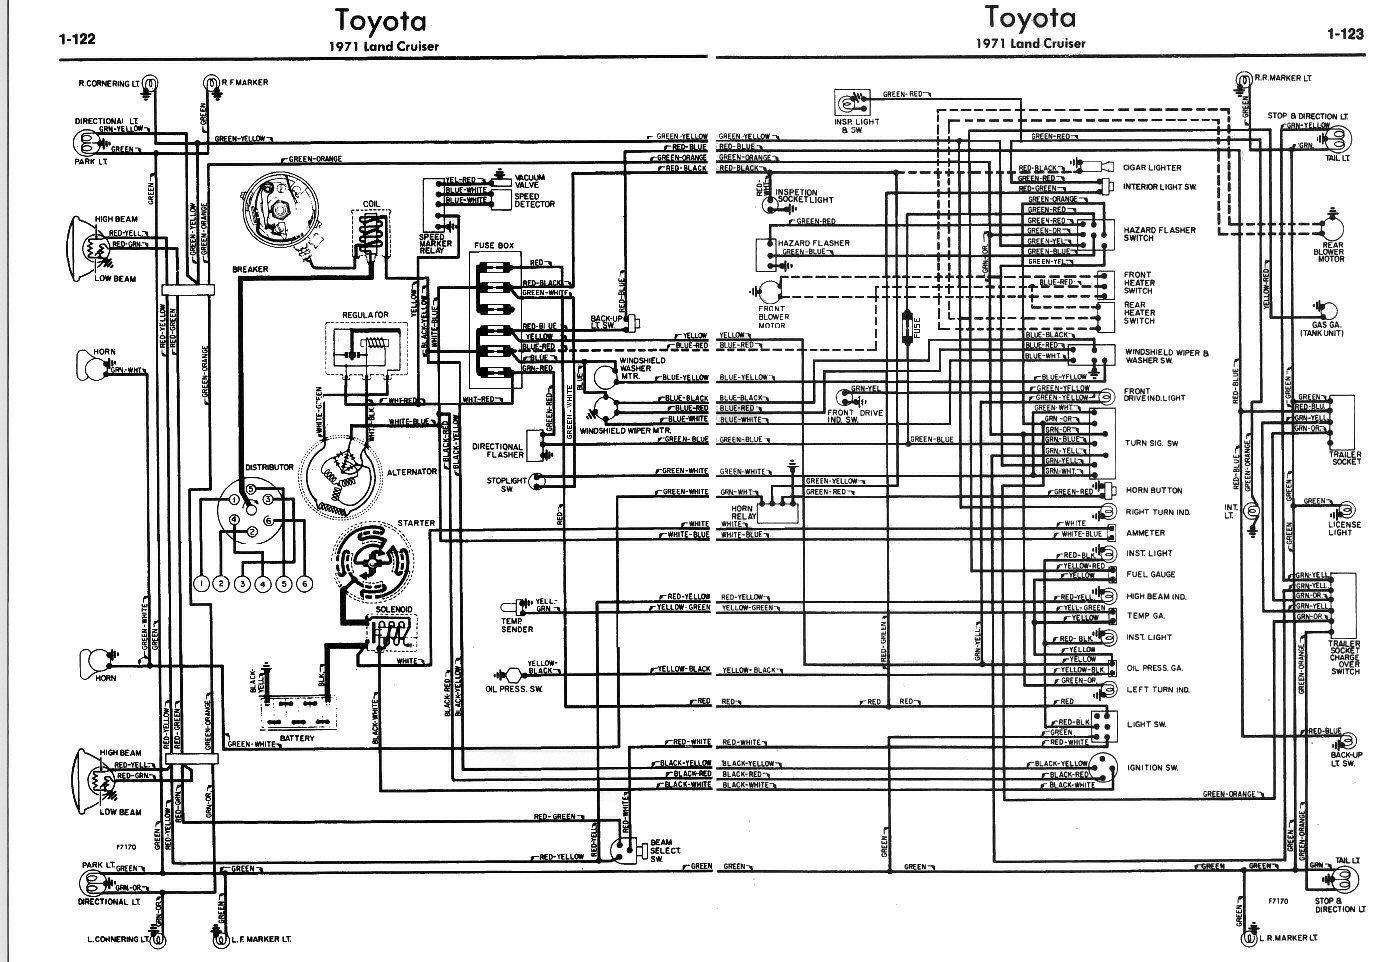 toyota fj40 wiring diagram - somurich.com 2001 ford f150 wiring diagram download ford territory wiring diagram download